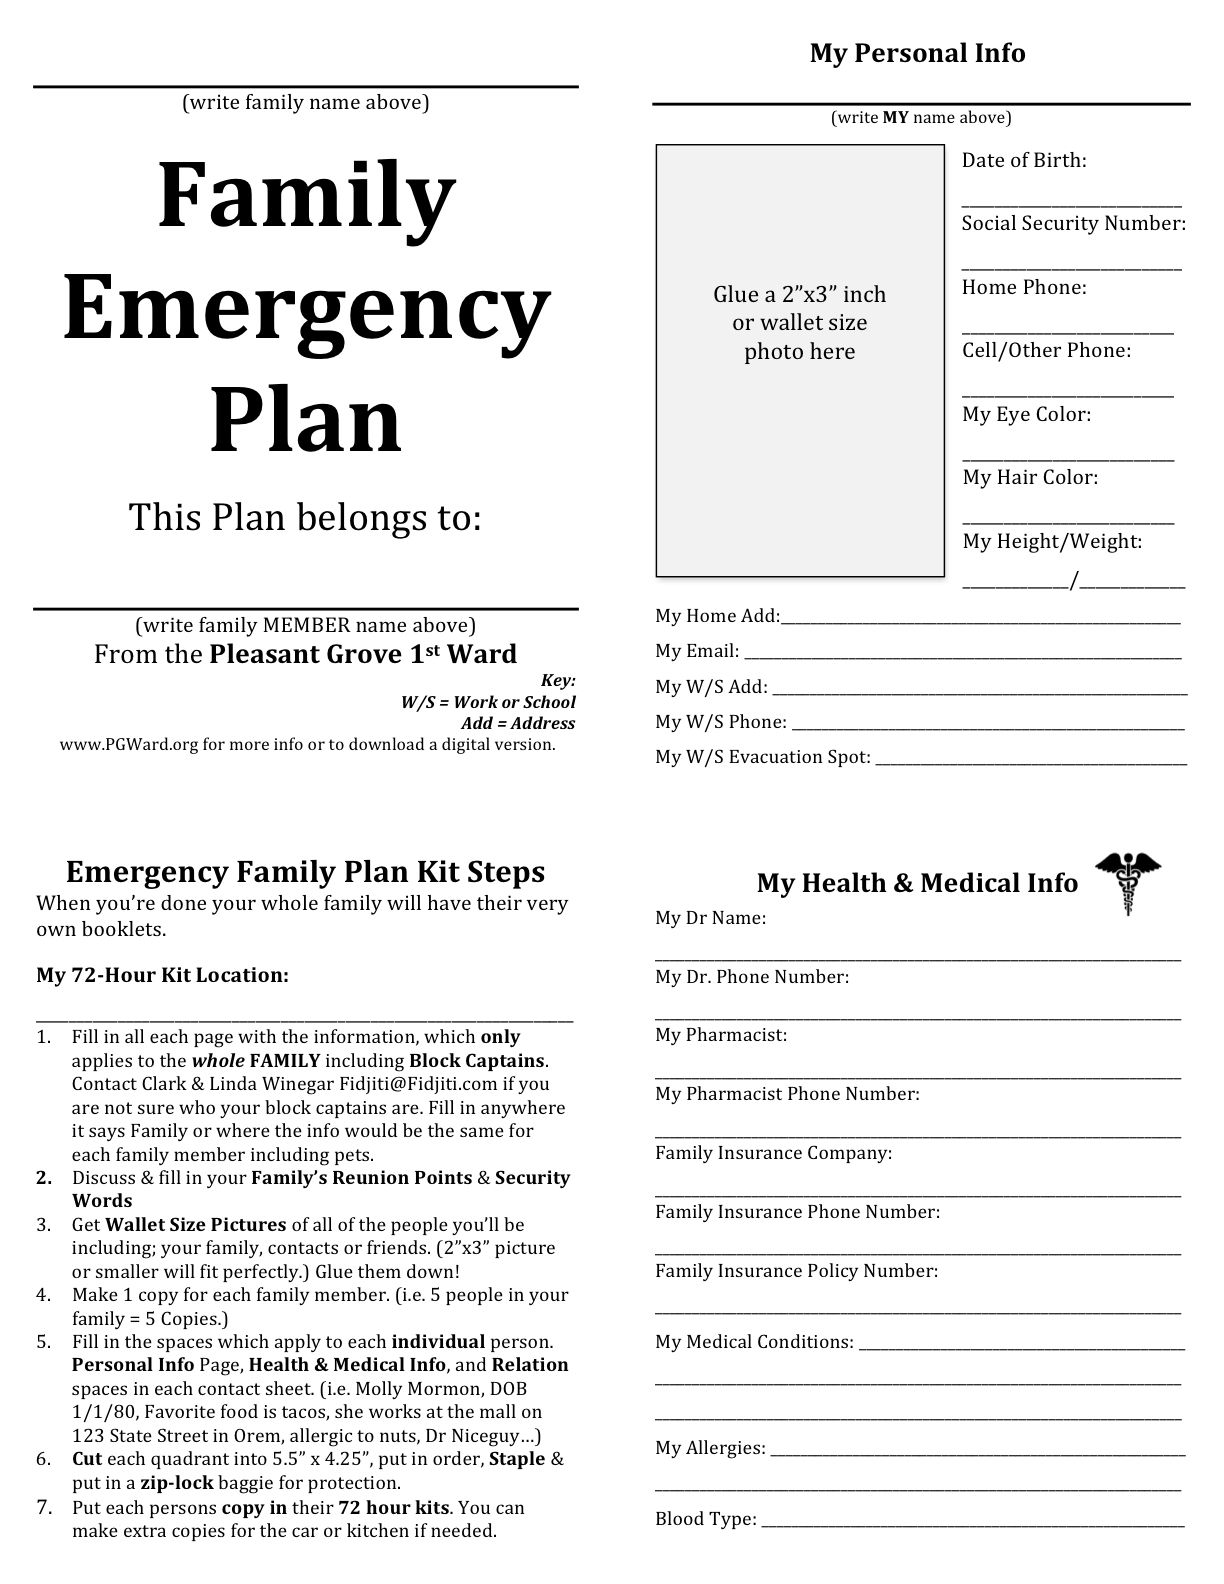 Family Emergency plan - printable documents for your emergency ...